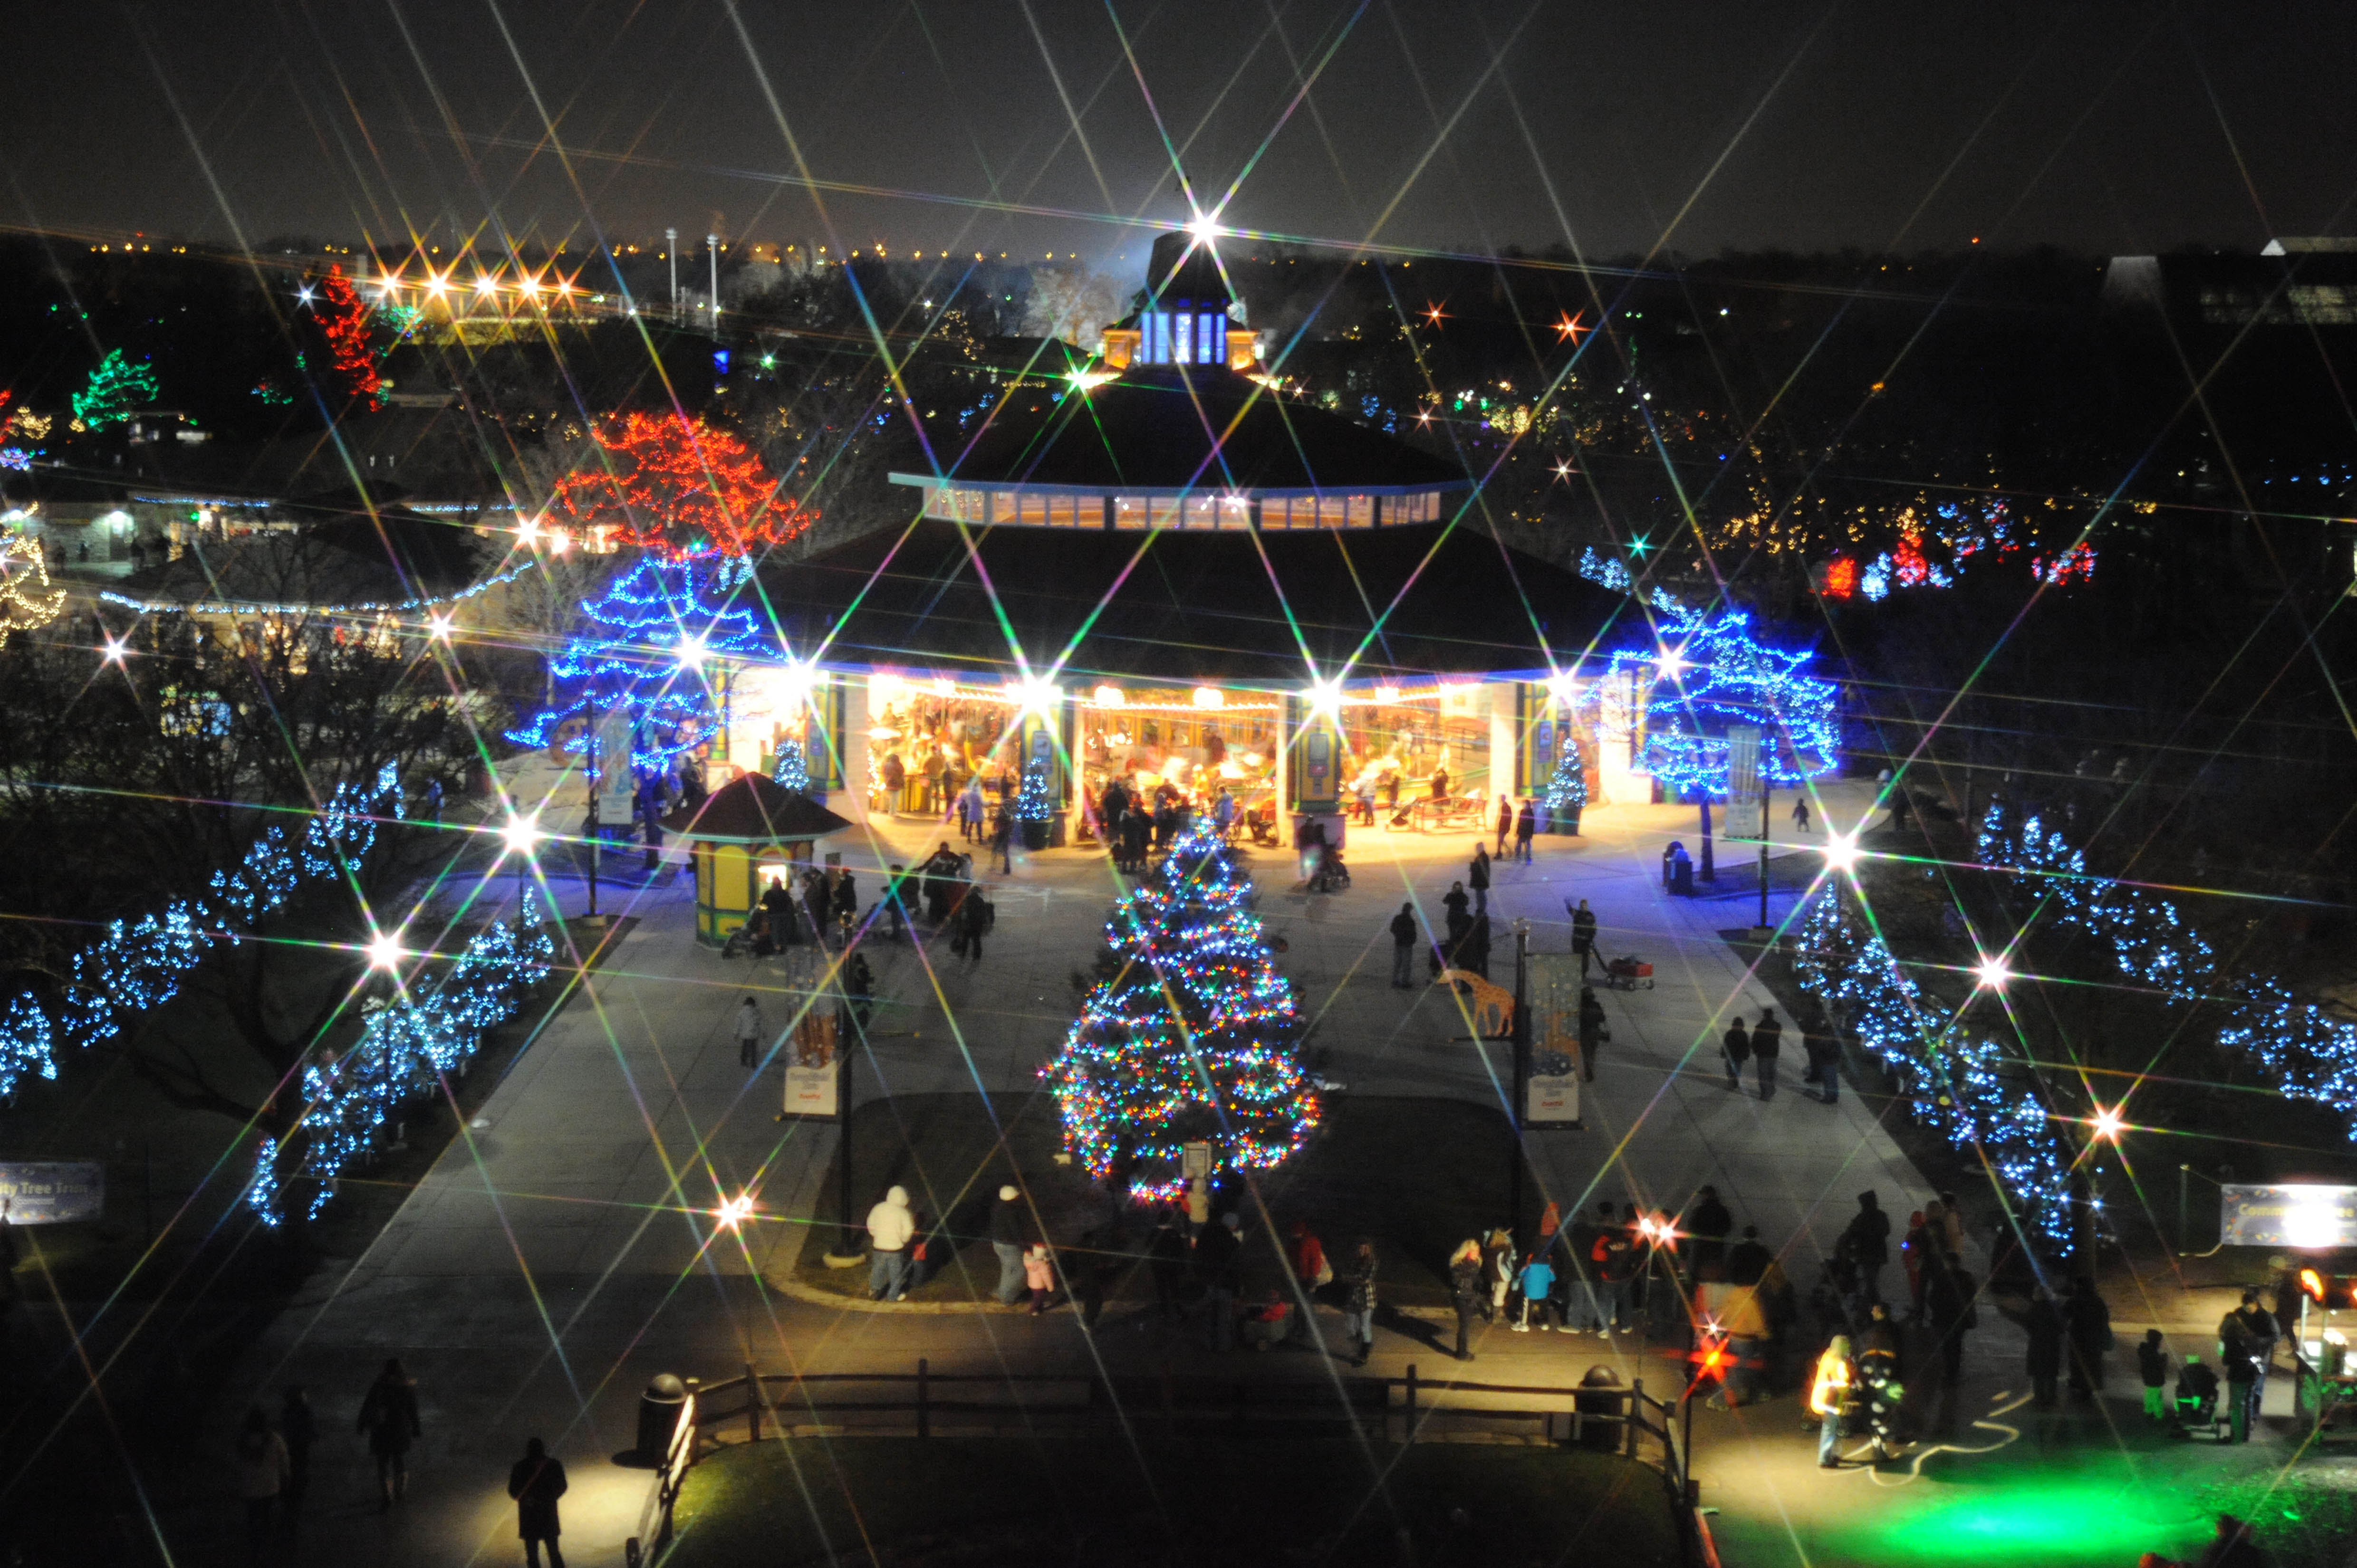 Brookfield Zoo Christmas Lights 2019 Chicago Zoological Society   Holiday Magic Lights up Brookfield